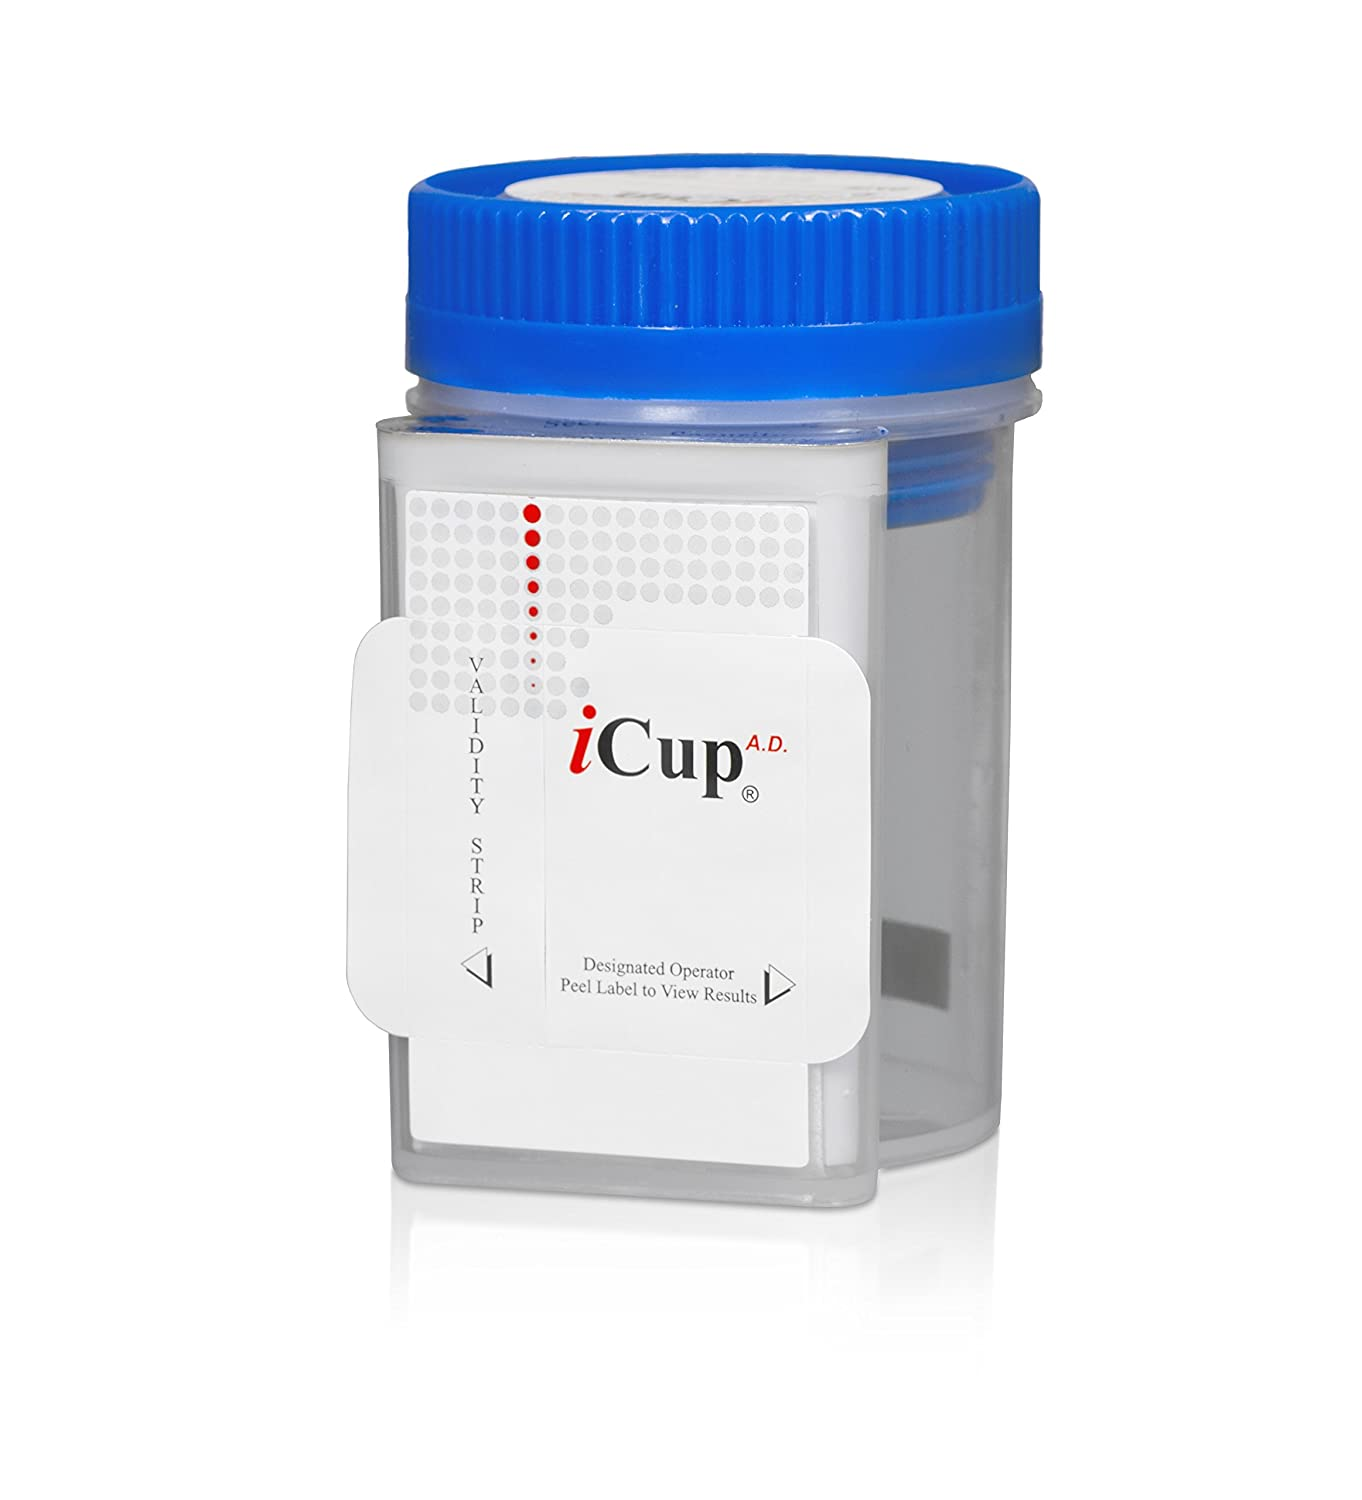 iCup Gifts A.D. 6 Panel Urine Drug Test OXY New popularity COC THC MDMA OPI AMP300